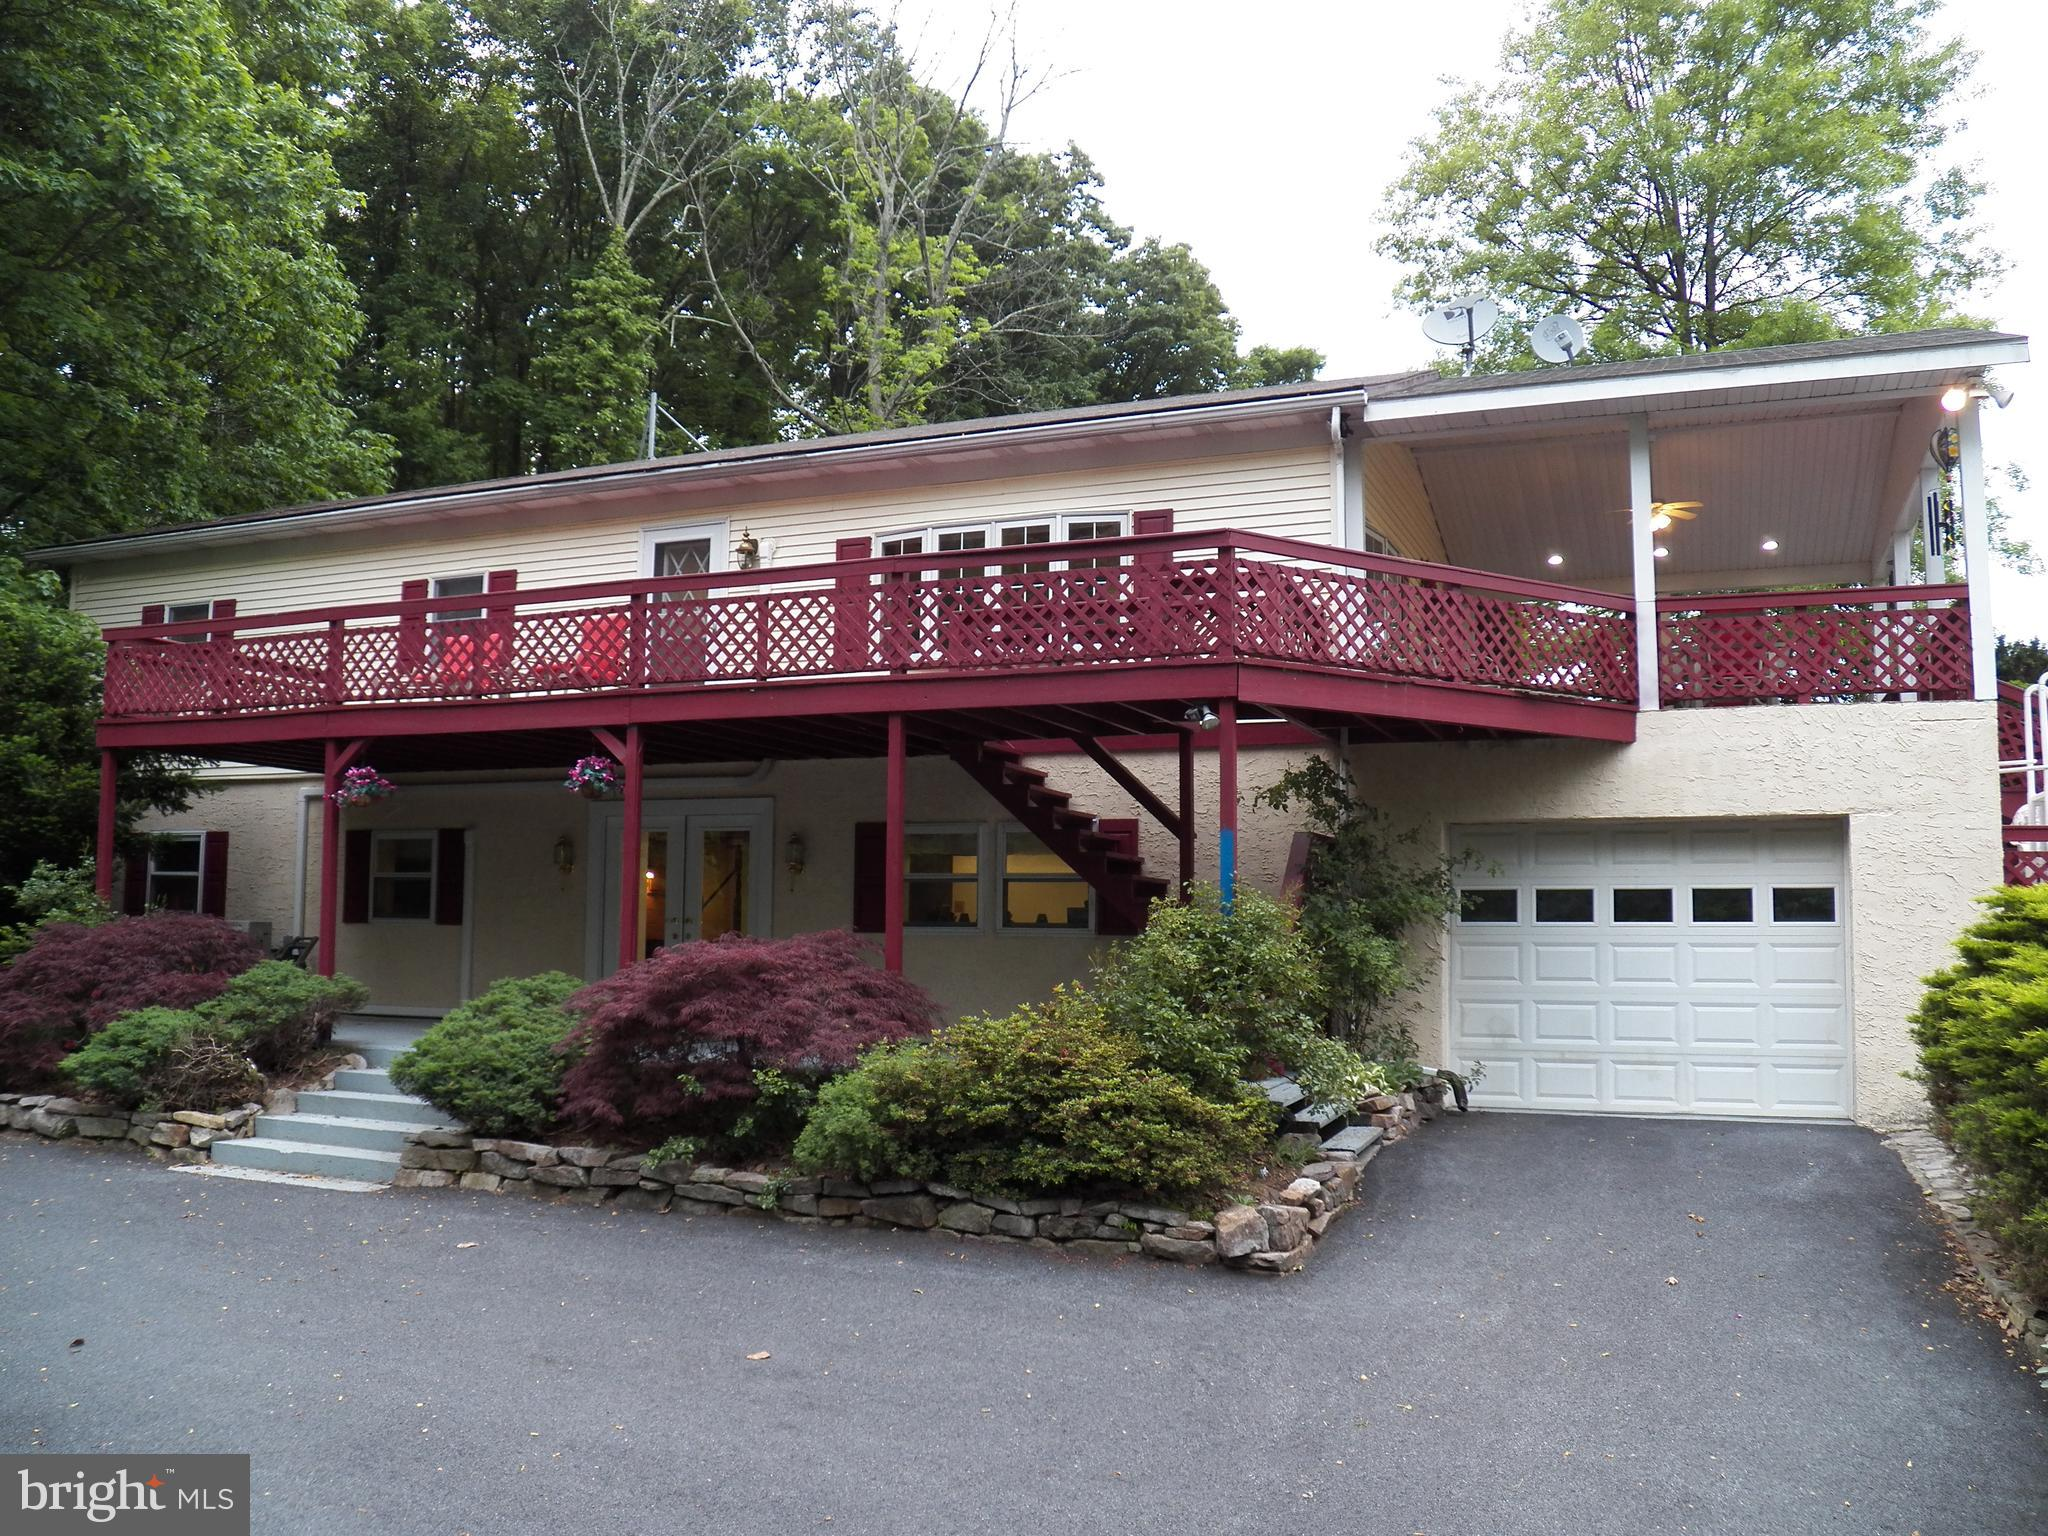 379 S FRONT STREET, SCHUYLKILL HAVEN, PA 17972